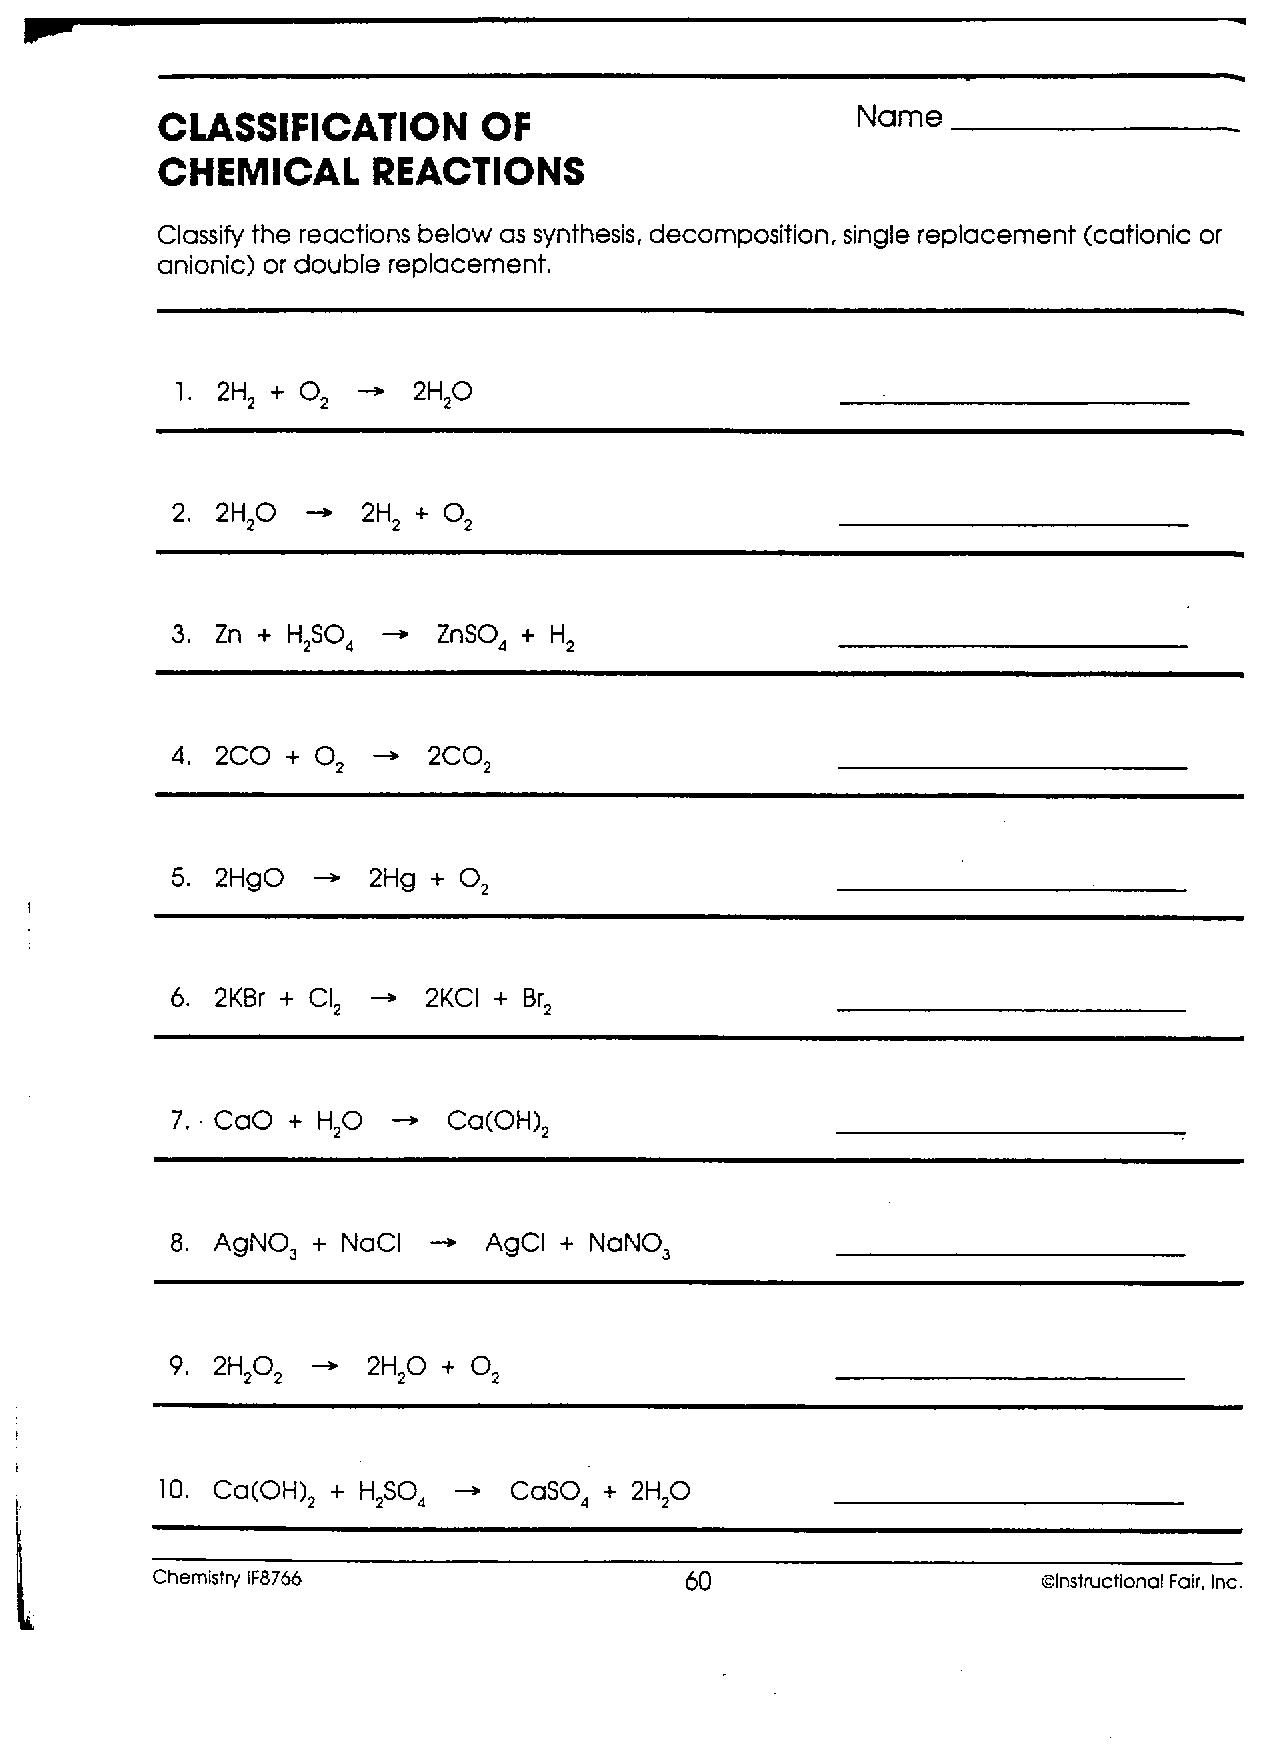 27 Chemical Reaction Types Worksheet Answers